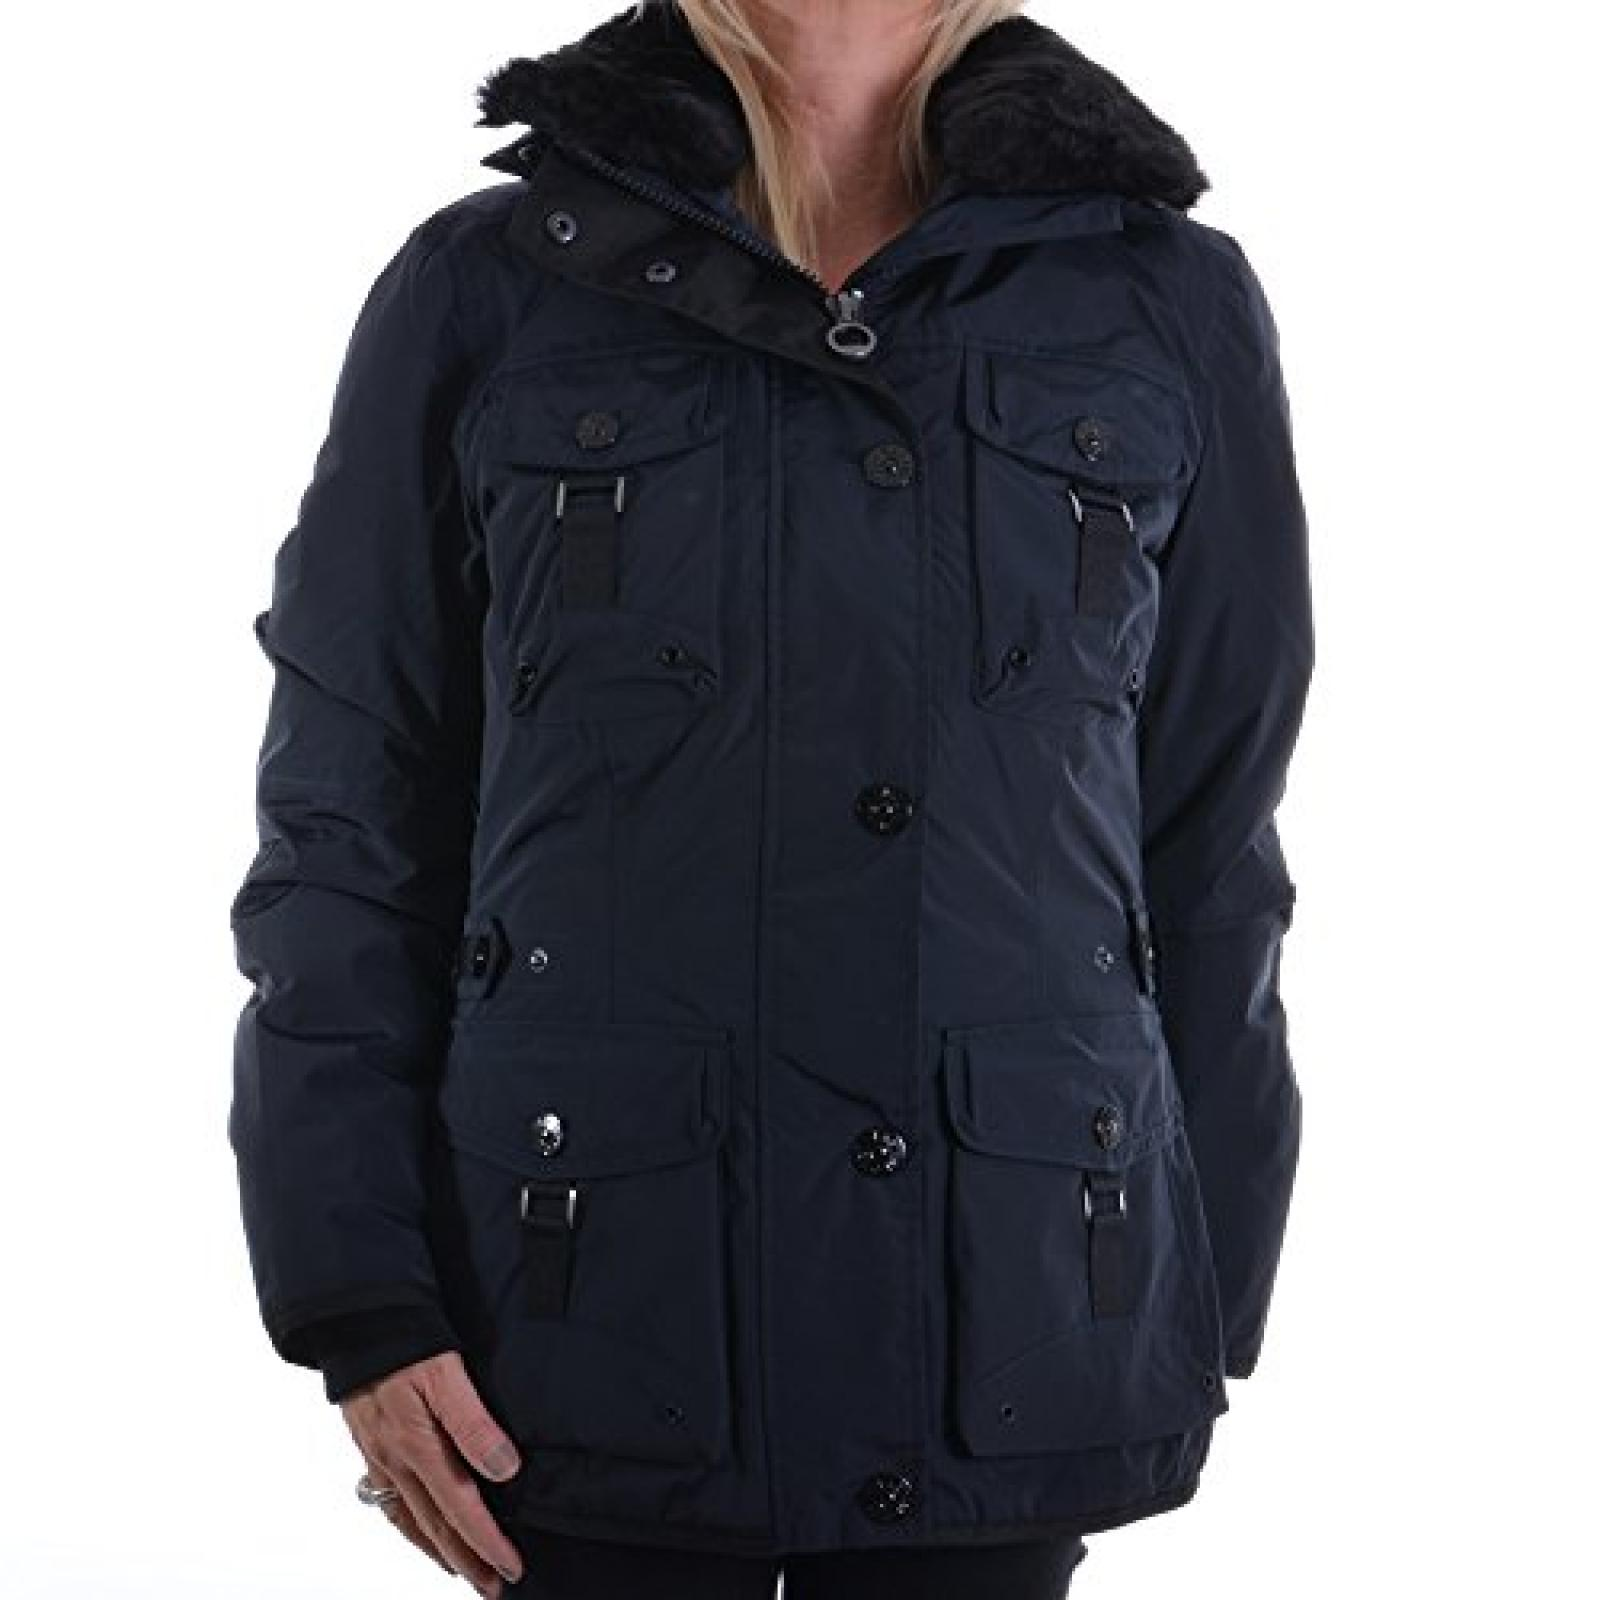 Wellensteyn Damenjacke Leuchtfeuer Lady Gr. S 399 LFEL-382 Midnightblue Damen Jacke Jacken